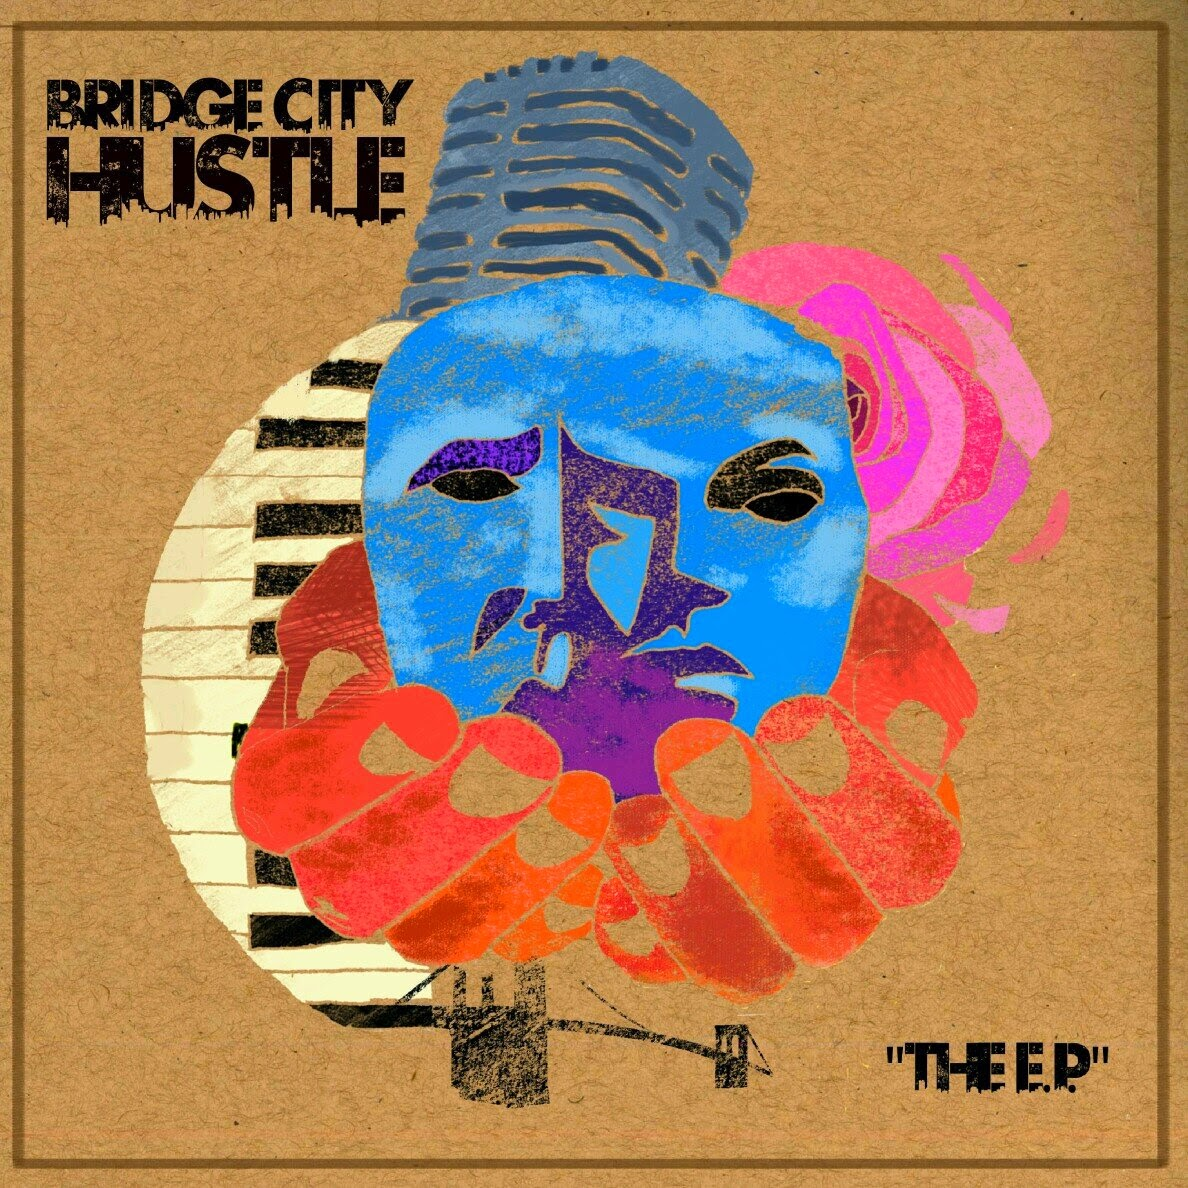 http://www.d4am.net/2014/05/bridge-city-hustle-ep.html